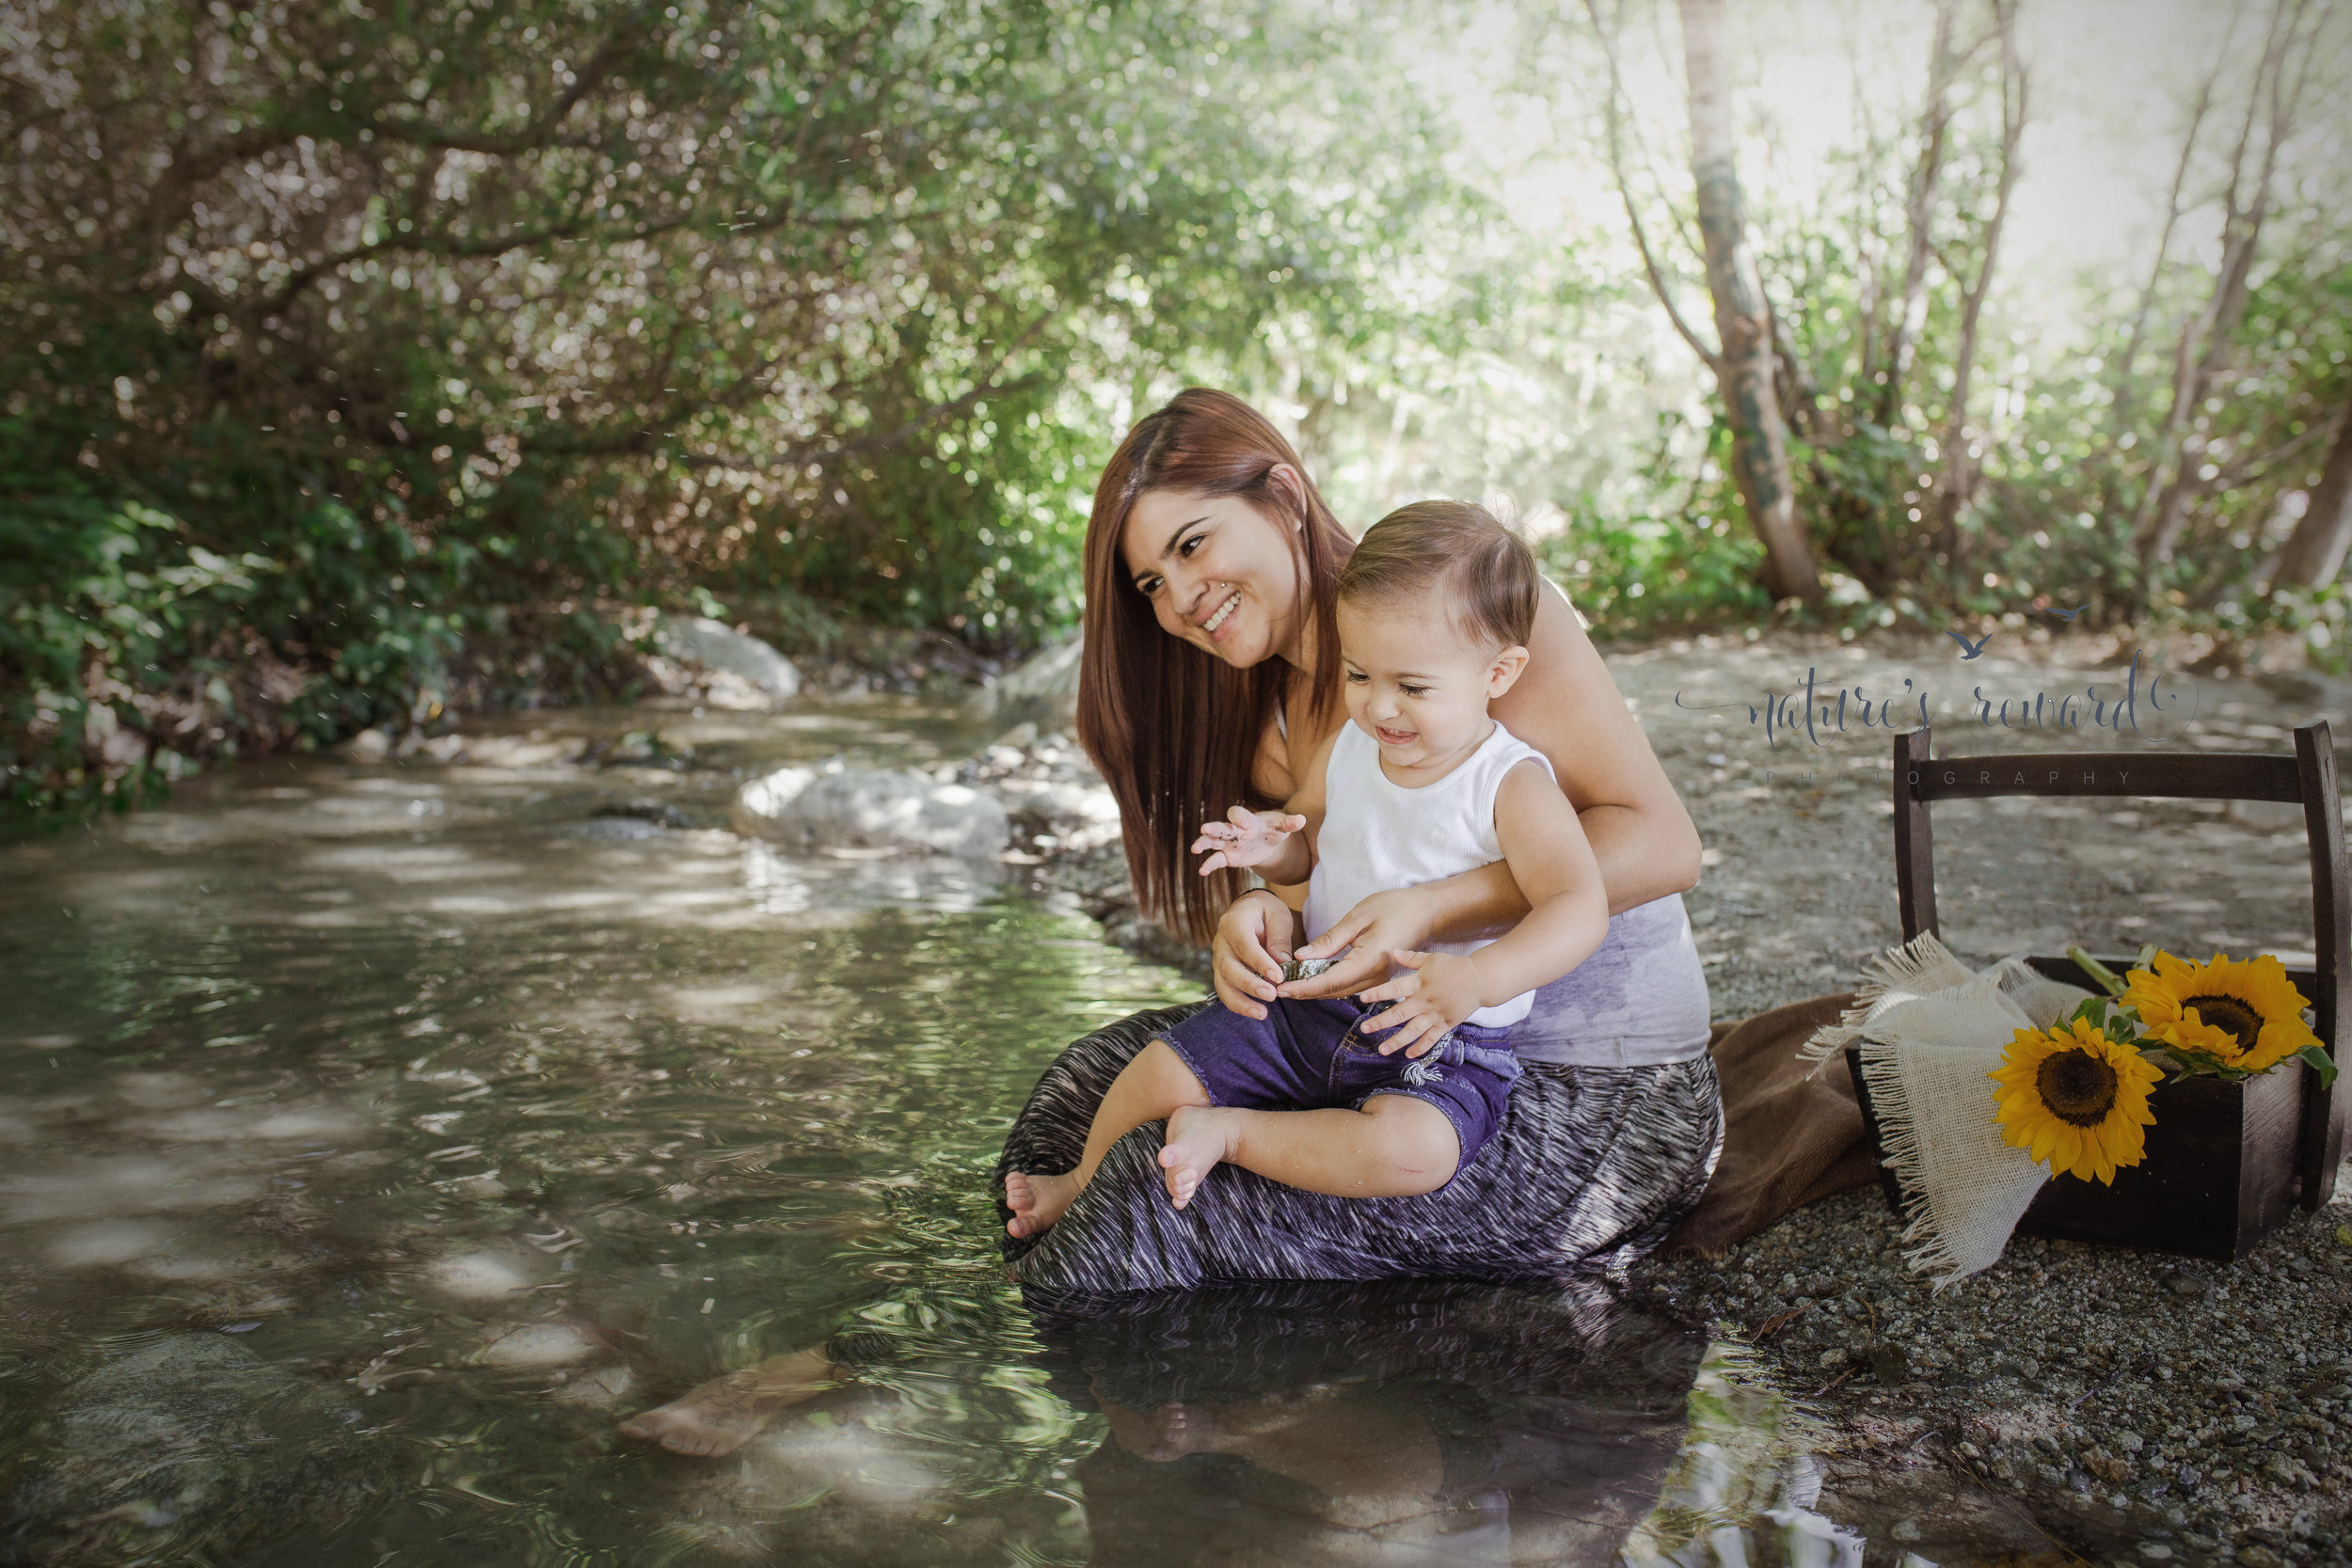 Little boys and throwing rocks.  Here we laugh at the innate need little boys have to throw rocks and see big splashes.  Oh the joys of boy mom hood. Image by Nature's Reward Photography, a Southern California newborn, family and child photographer